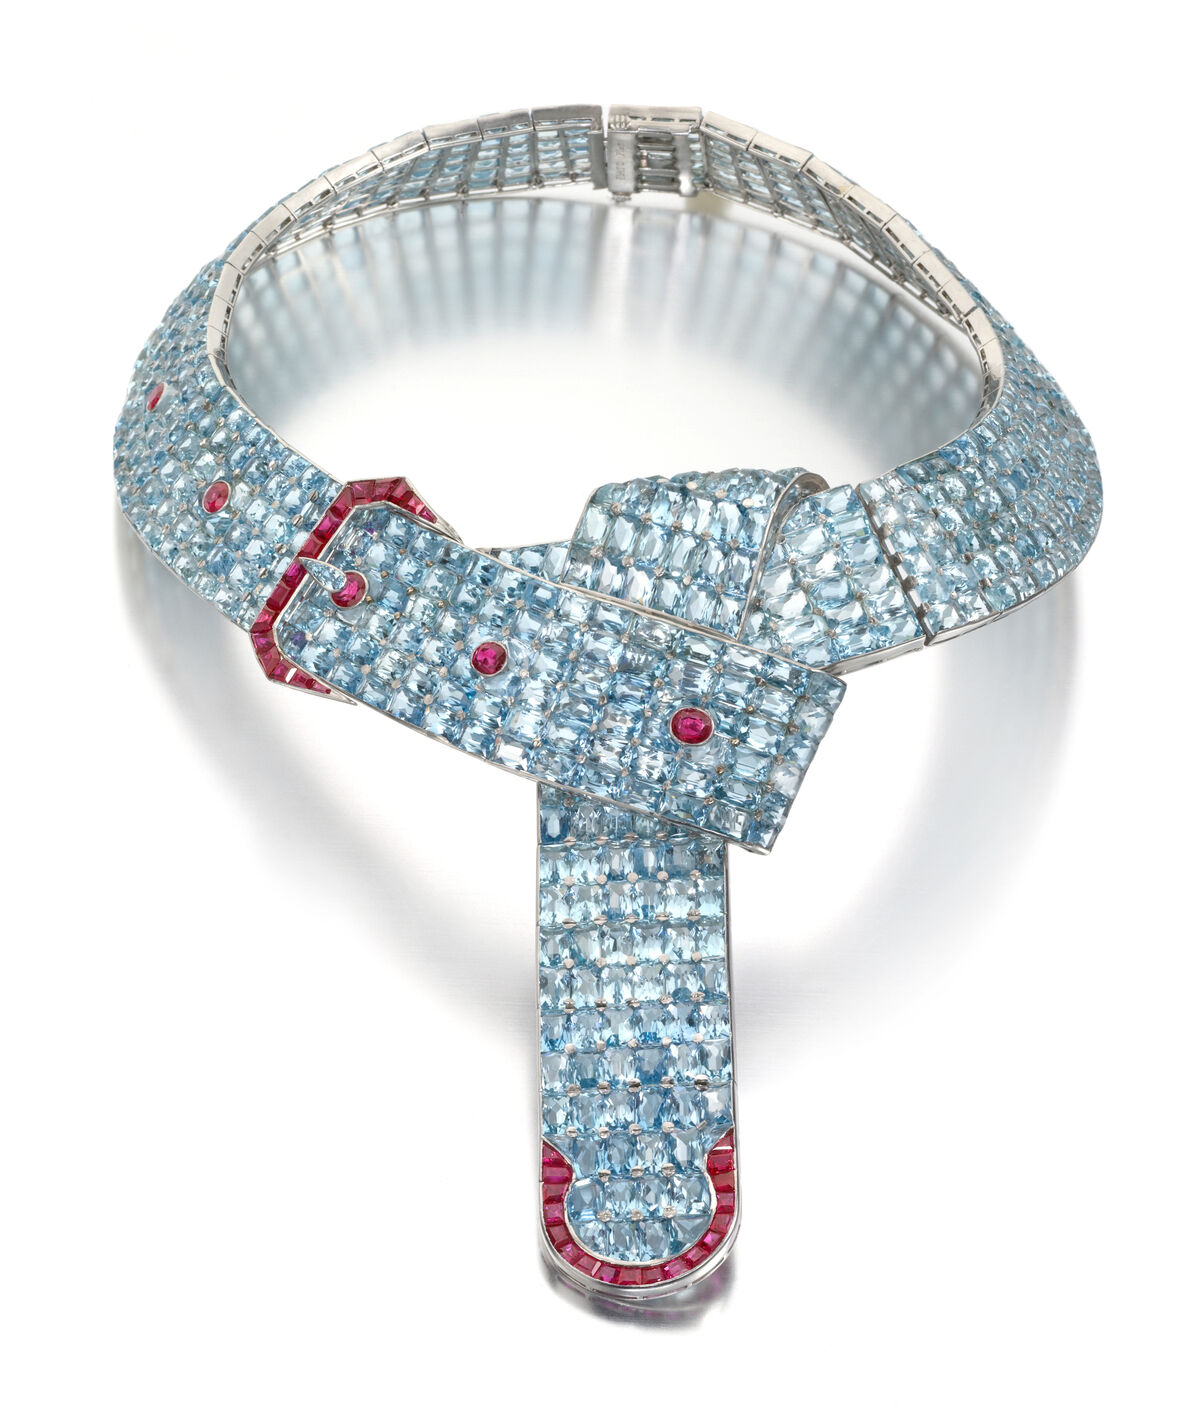 The ColePorterNecklace: An Aquamarine and Ruby Belt with a Buckle Necklace Designed by Fulco, Duke of Verdura, for Paul Flato, New York, circa 1935. Image courtesy ofSiegelson.